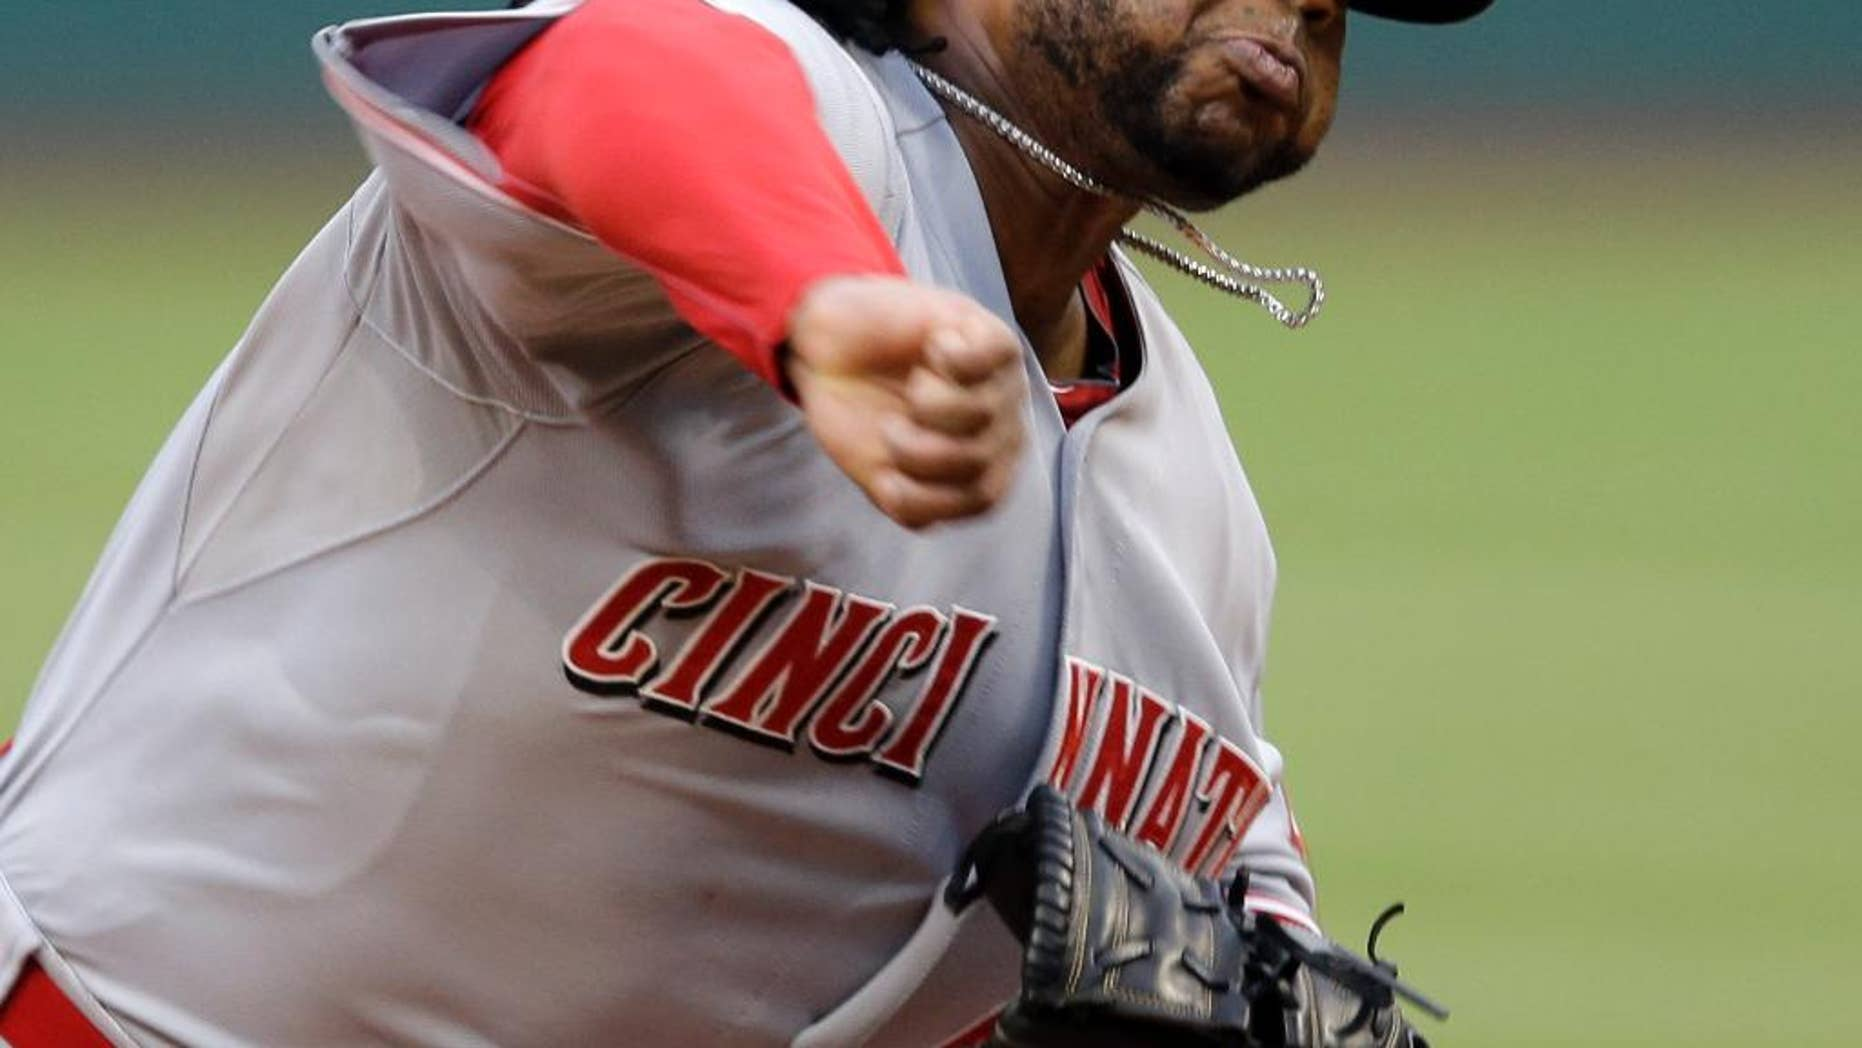 Cincinnati Reds starting pitcher Johnny Cueto delivers against the Cleveland Indians in the first inning of a baseball game Tuesday, Aug. 5, 2014, in Cleveland. (AP Photo/Mark Duncan)